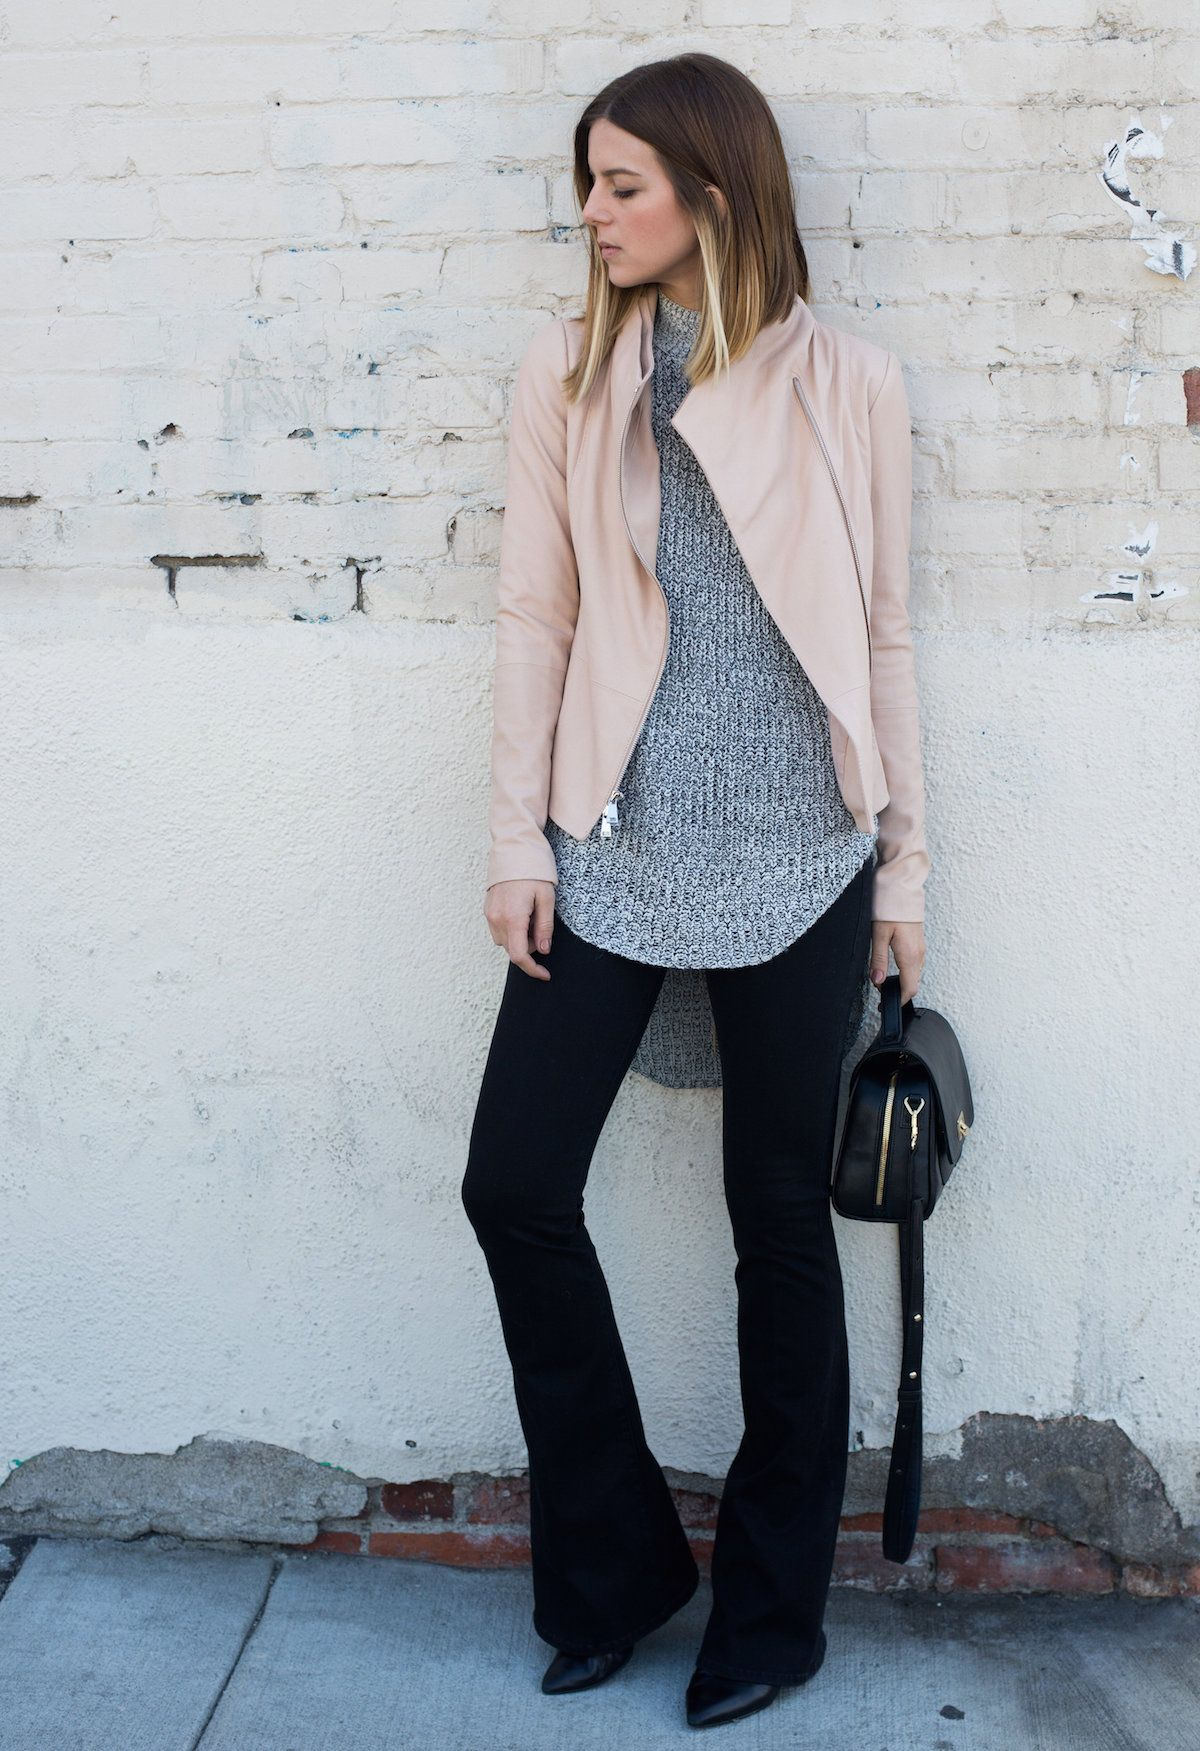 STYLE BLOG - LOS ANGELES STYLE BLOGGERS | Angeles, Bags and Style